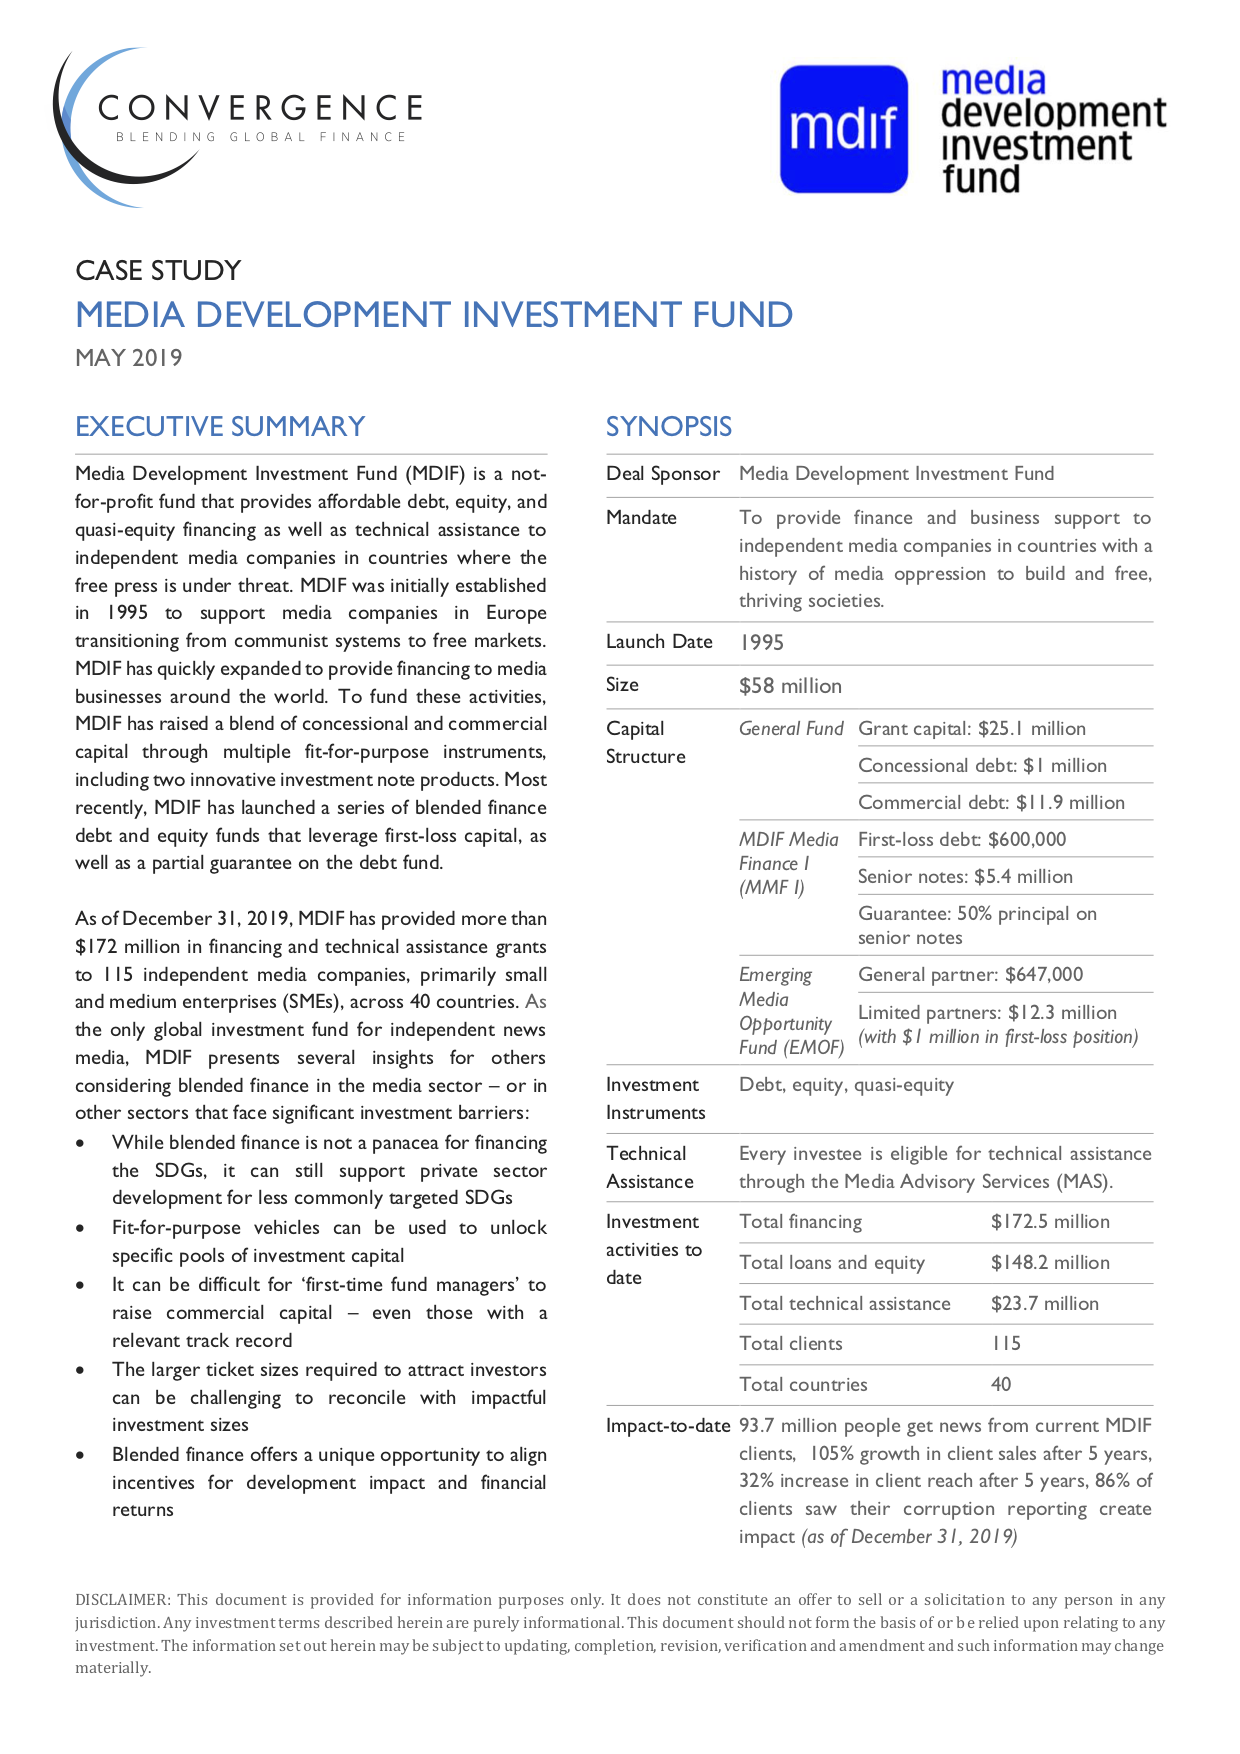 Media Development Investment Fund Case Study